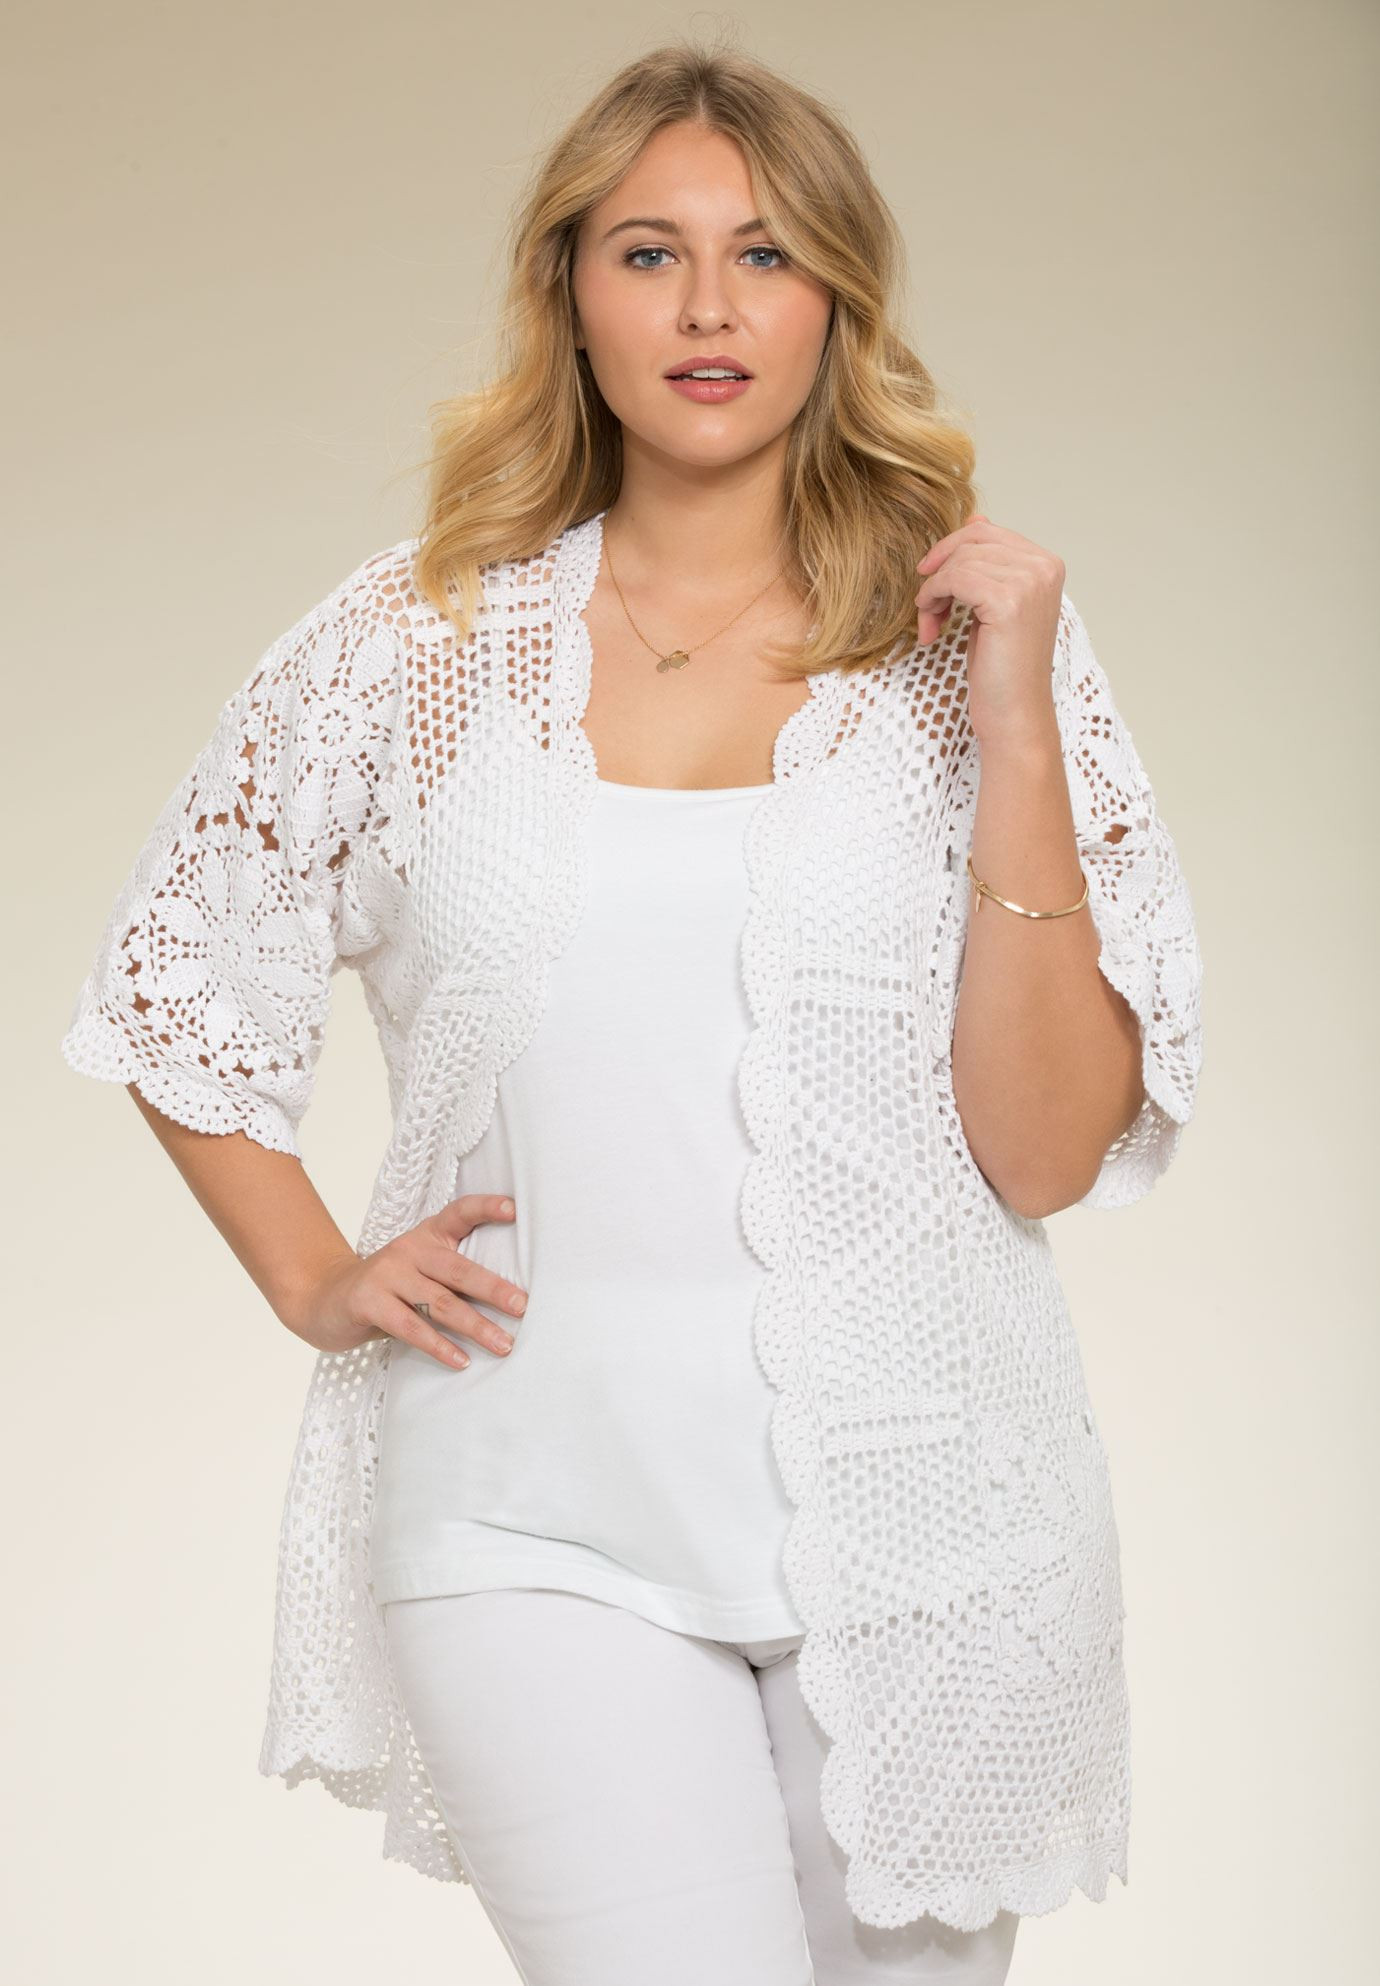 Fresh Hand Crocheted Lace Cardigan Plus Size Cardigans White Crochet Cardigans Of Delightful 41 Images White Crochet Cardigans